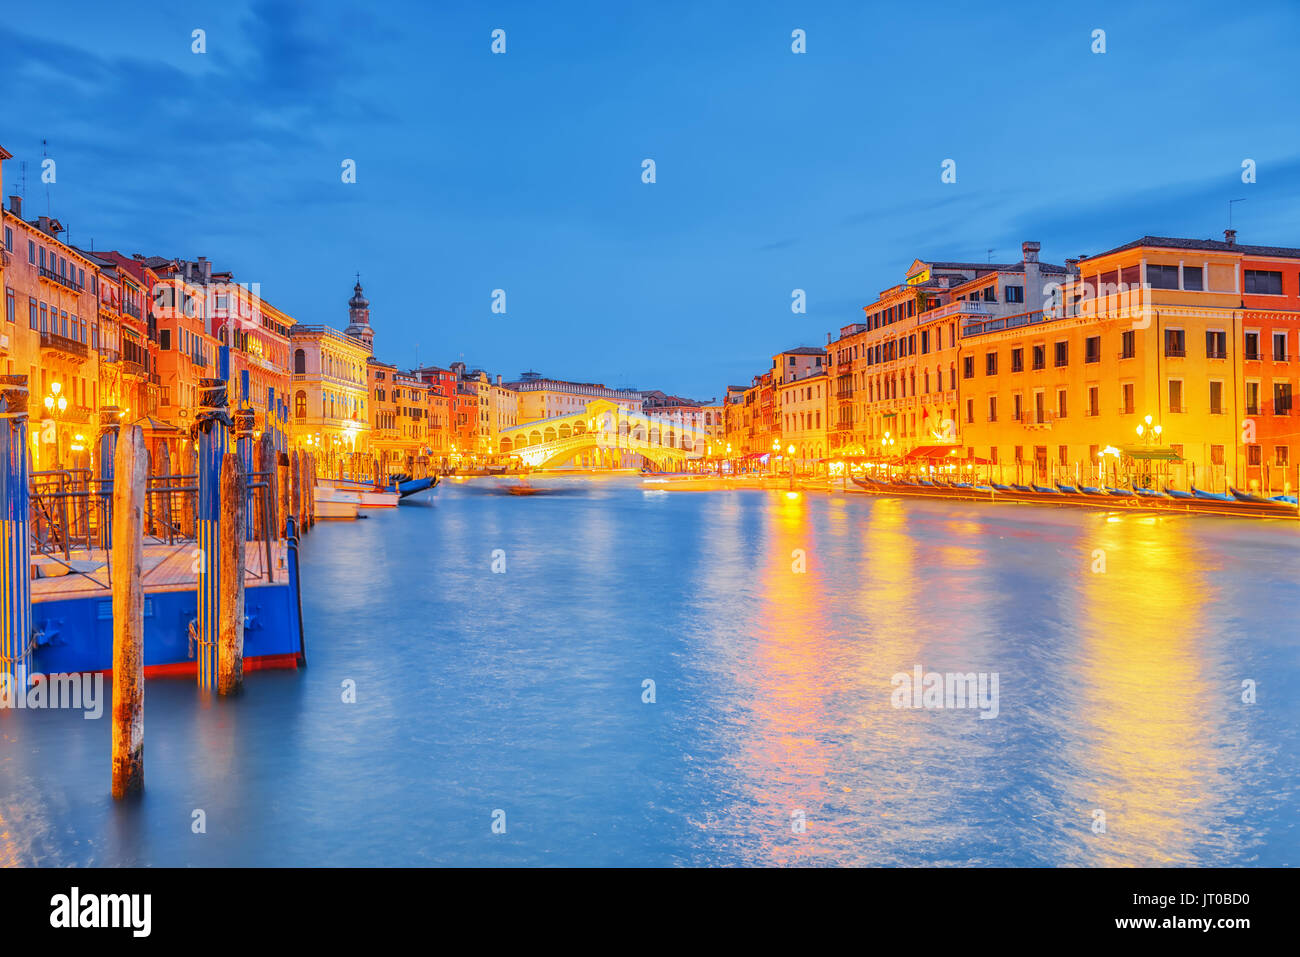 Views of the most beautiful canal of Venice - Grand Canal water streets, boats, gondolas, mansions along. Night view. Italy. - Stock Image